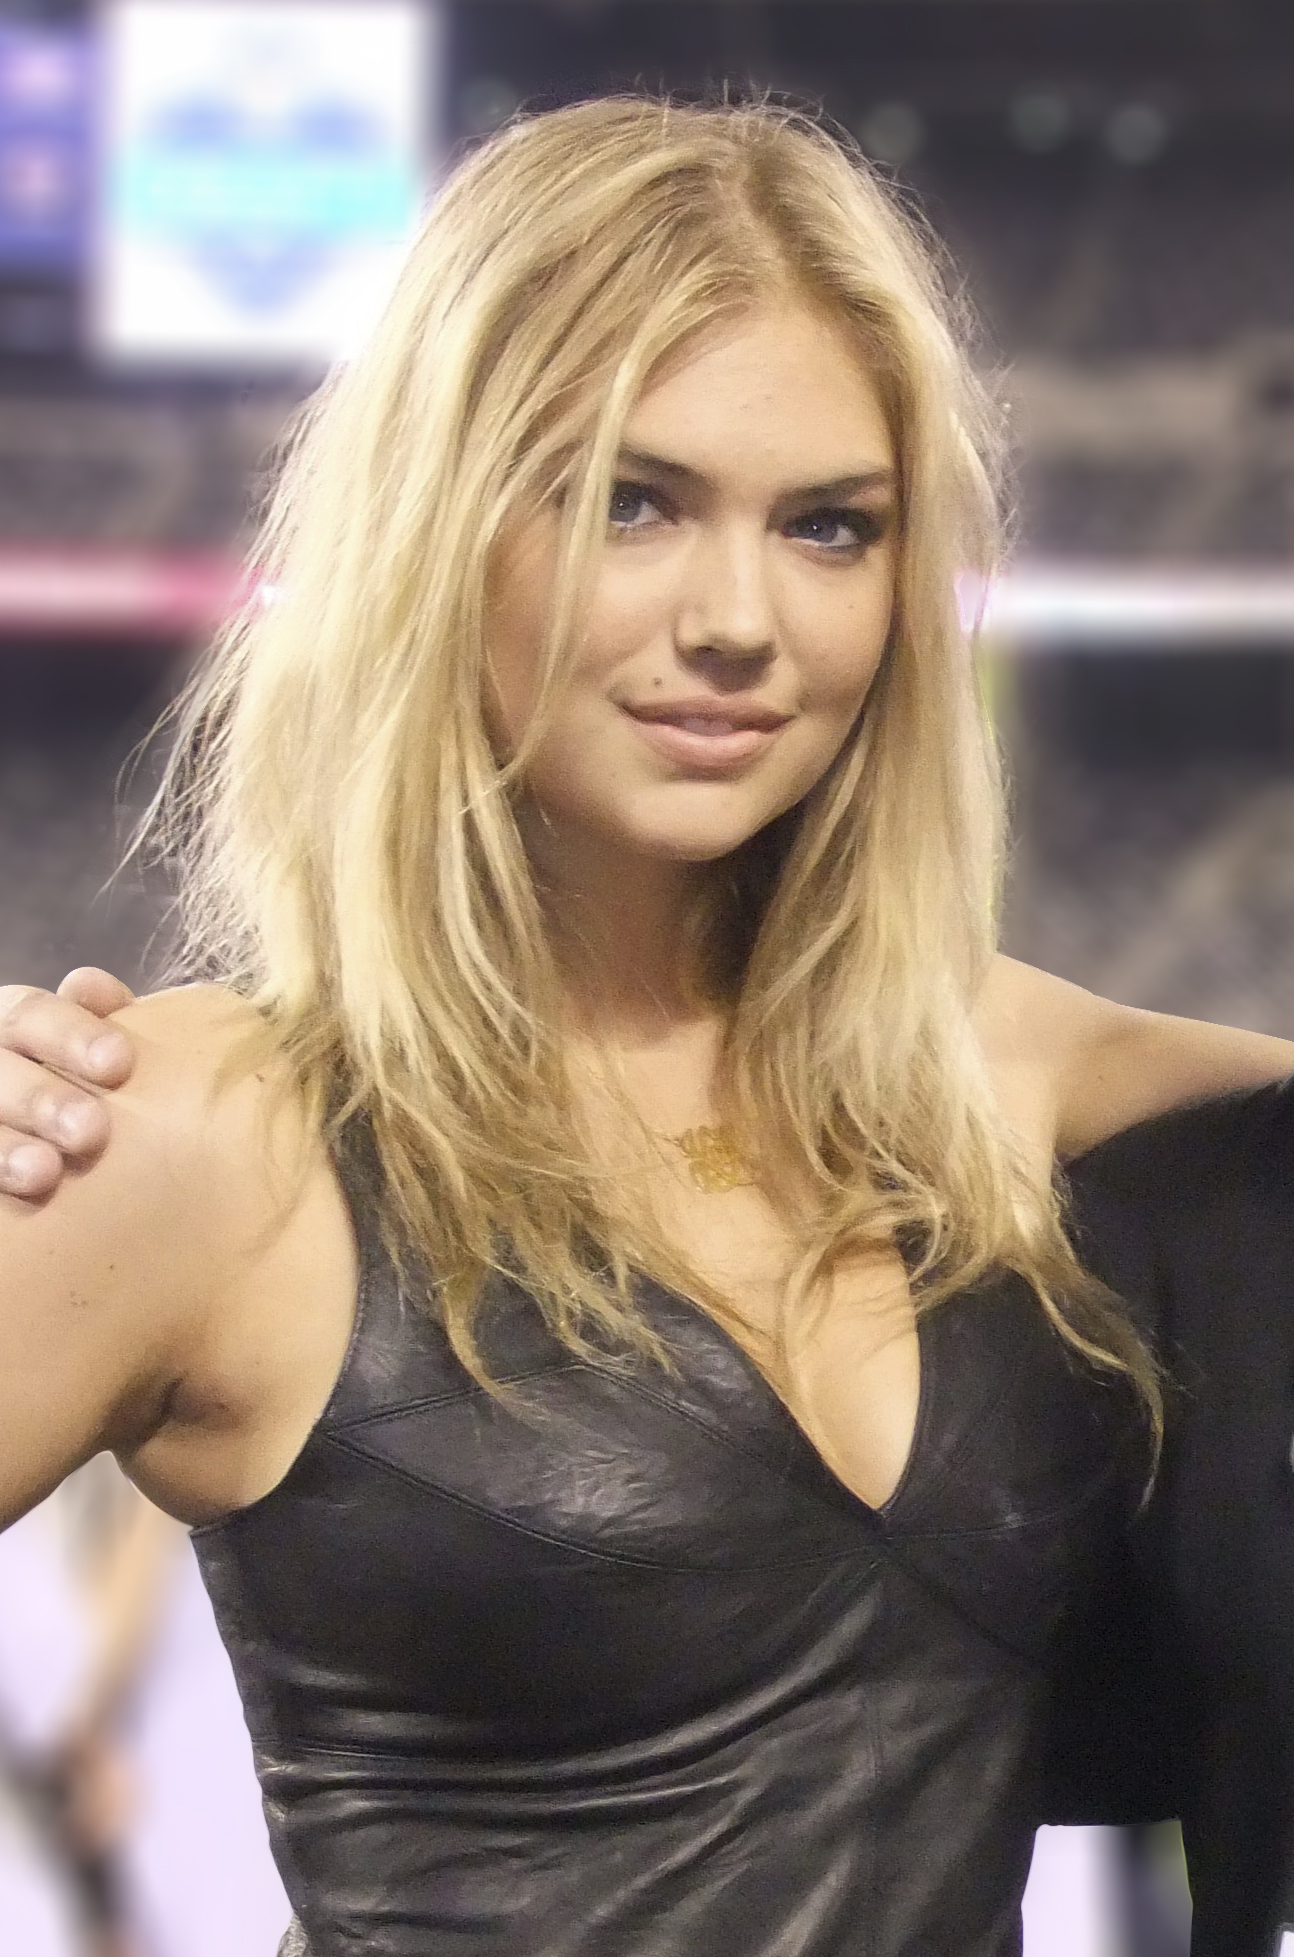 Kate_Upton_at_2011_Jets_VIP_draft_party_(crop)